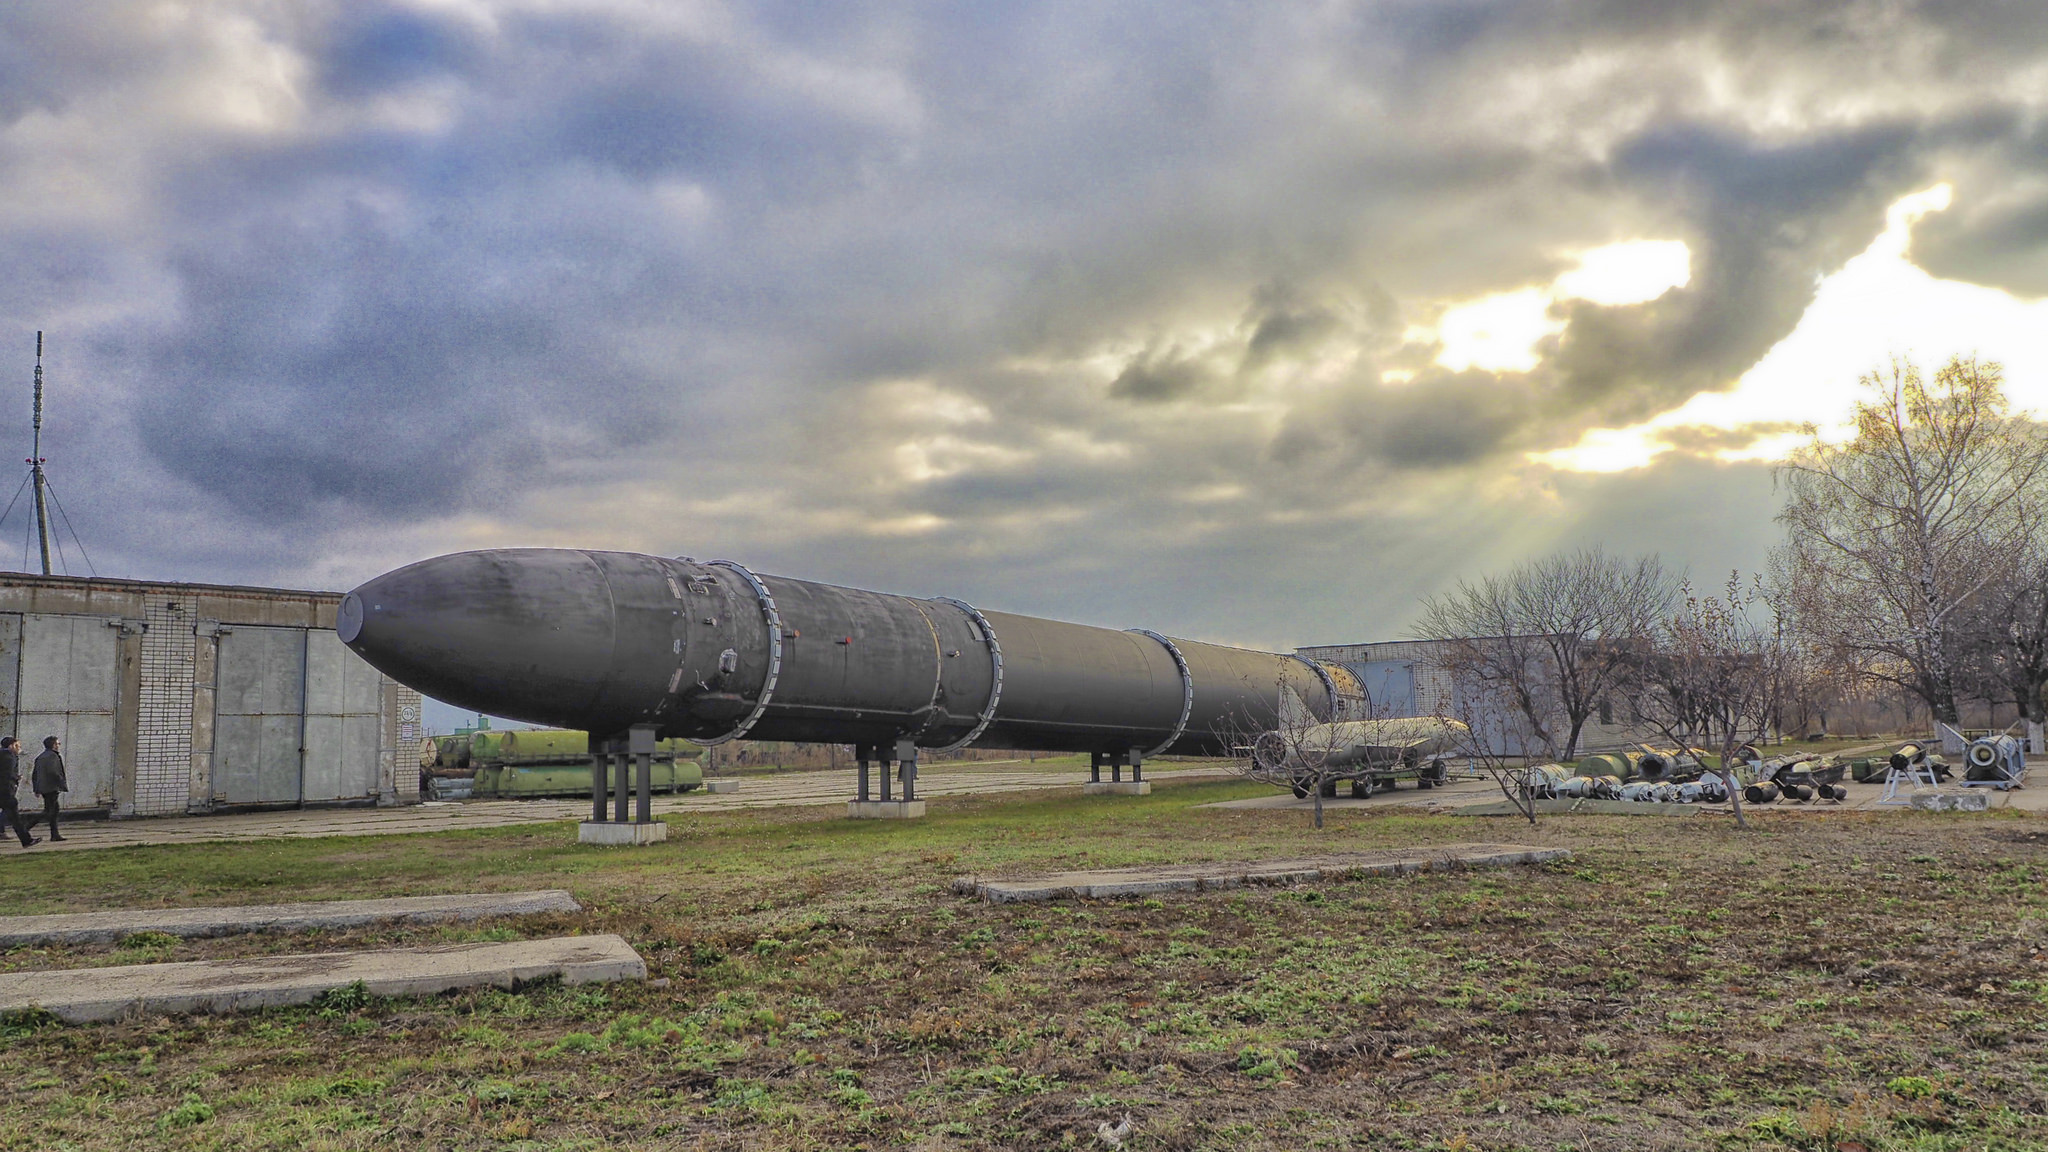 Unwrapping Armageddon:  The Erosion of Nuclear Arms Control